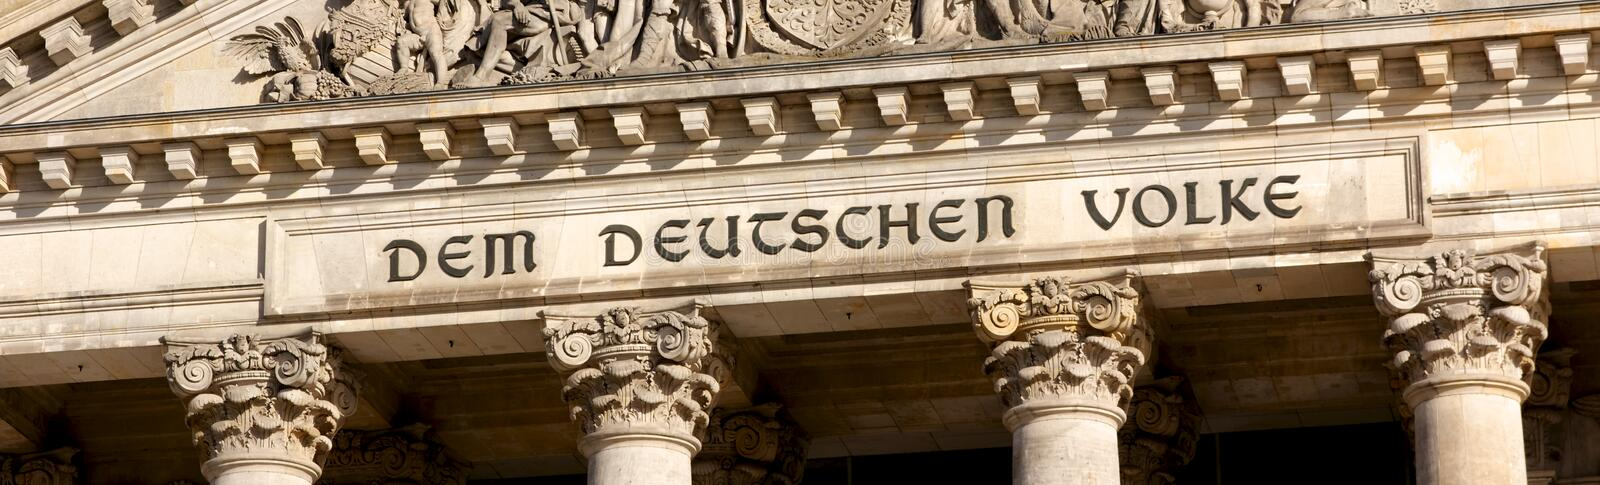 Reichstag Inscription in Berlin. Inscription Dem Deutschen Volke (to the German people) on the facade of the Reichstag, seat of the federal parliament in Berlin stock images